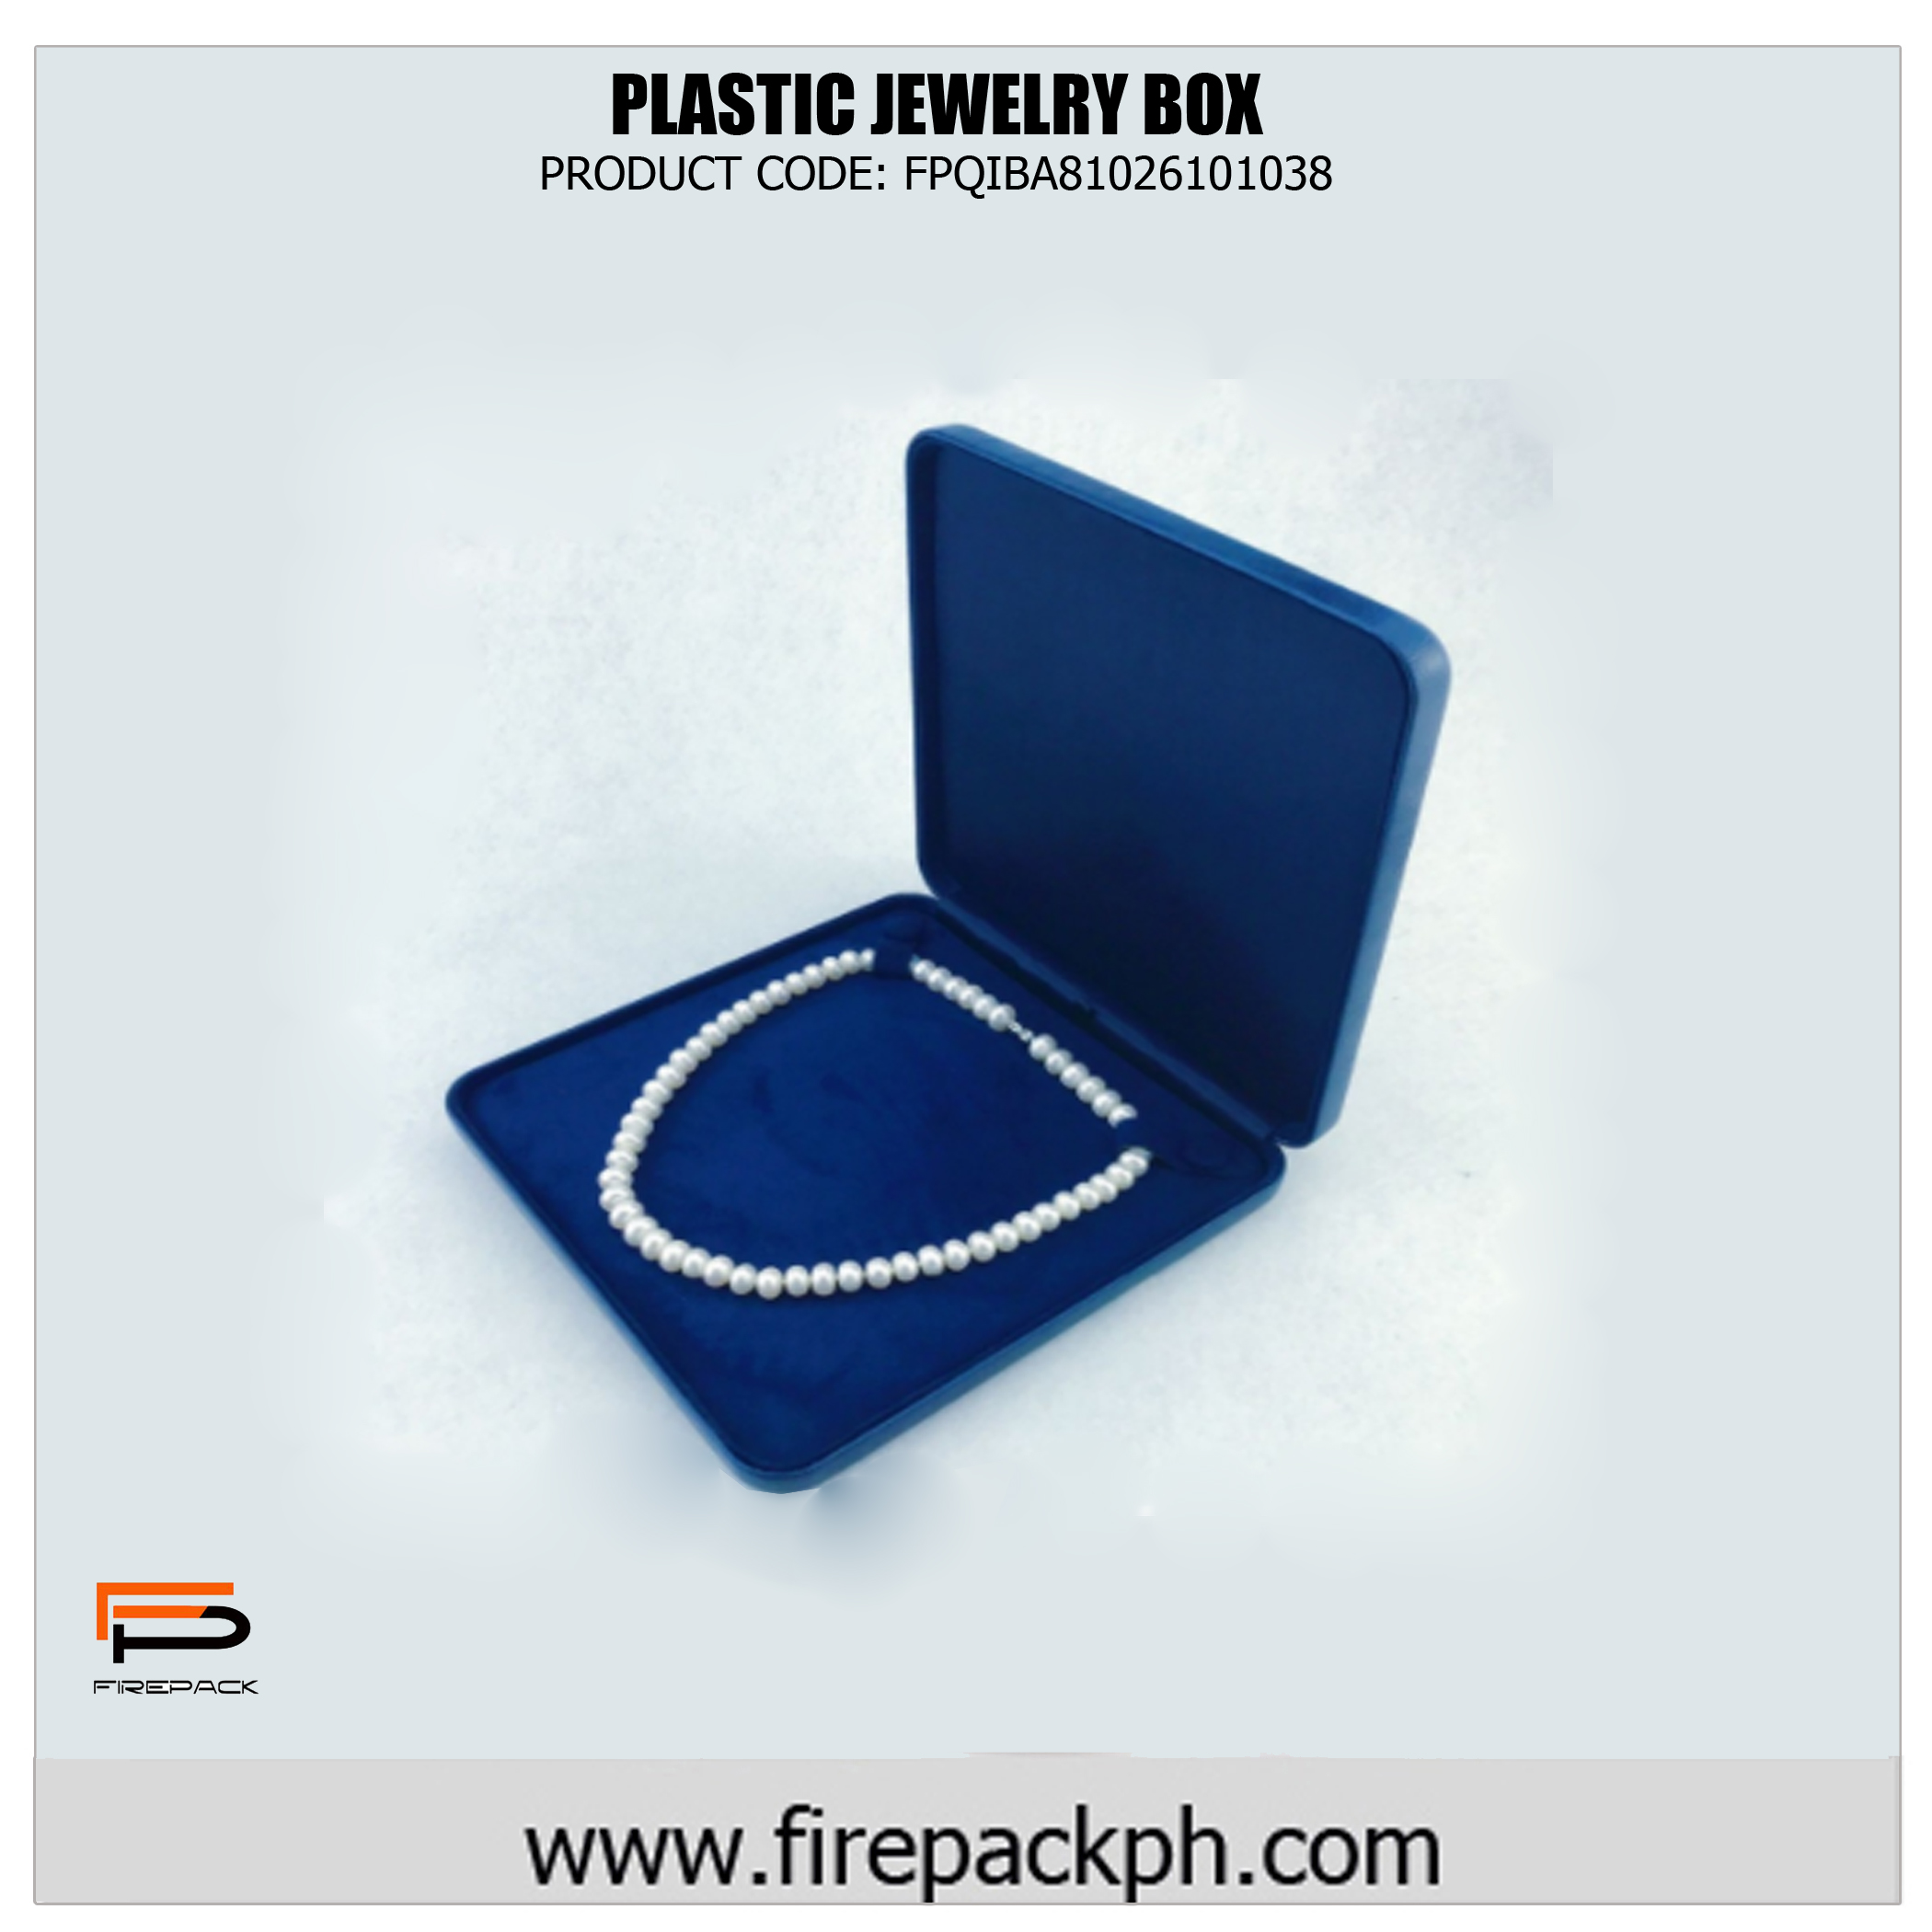 JEWELRY BOX FIREPACK PACKAGING SOLUTIONS PH